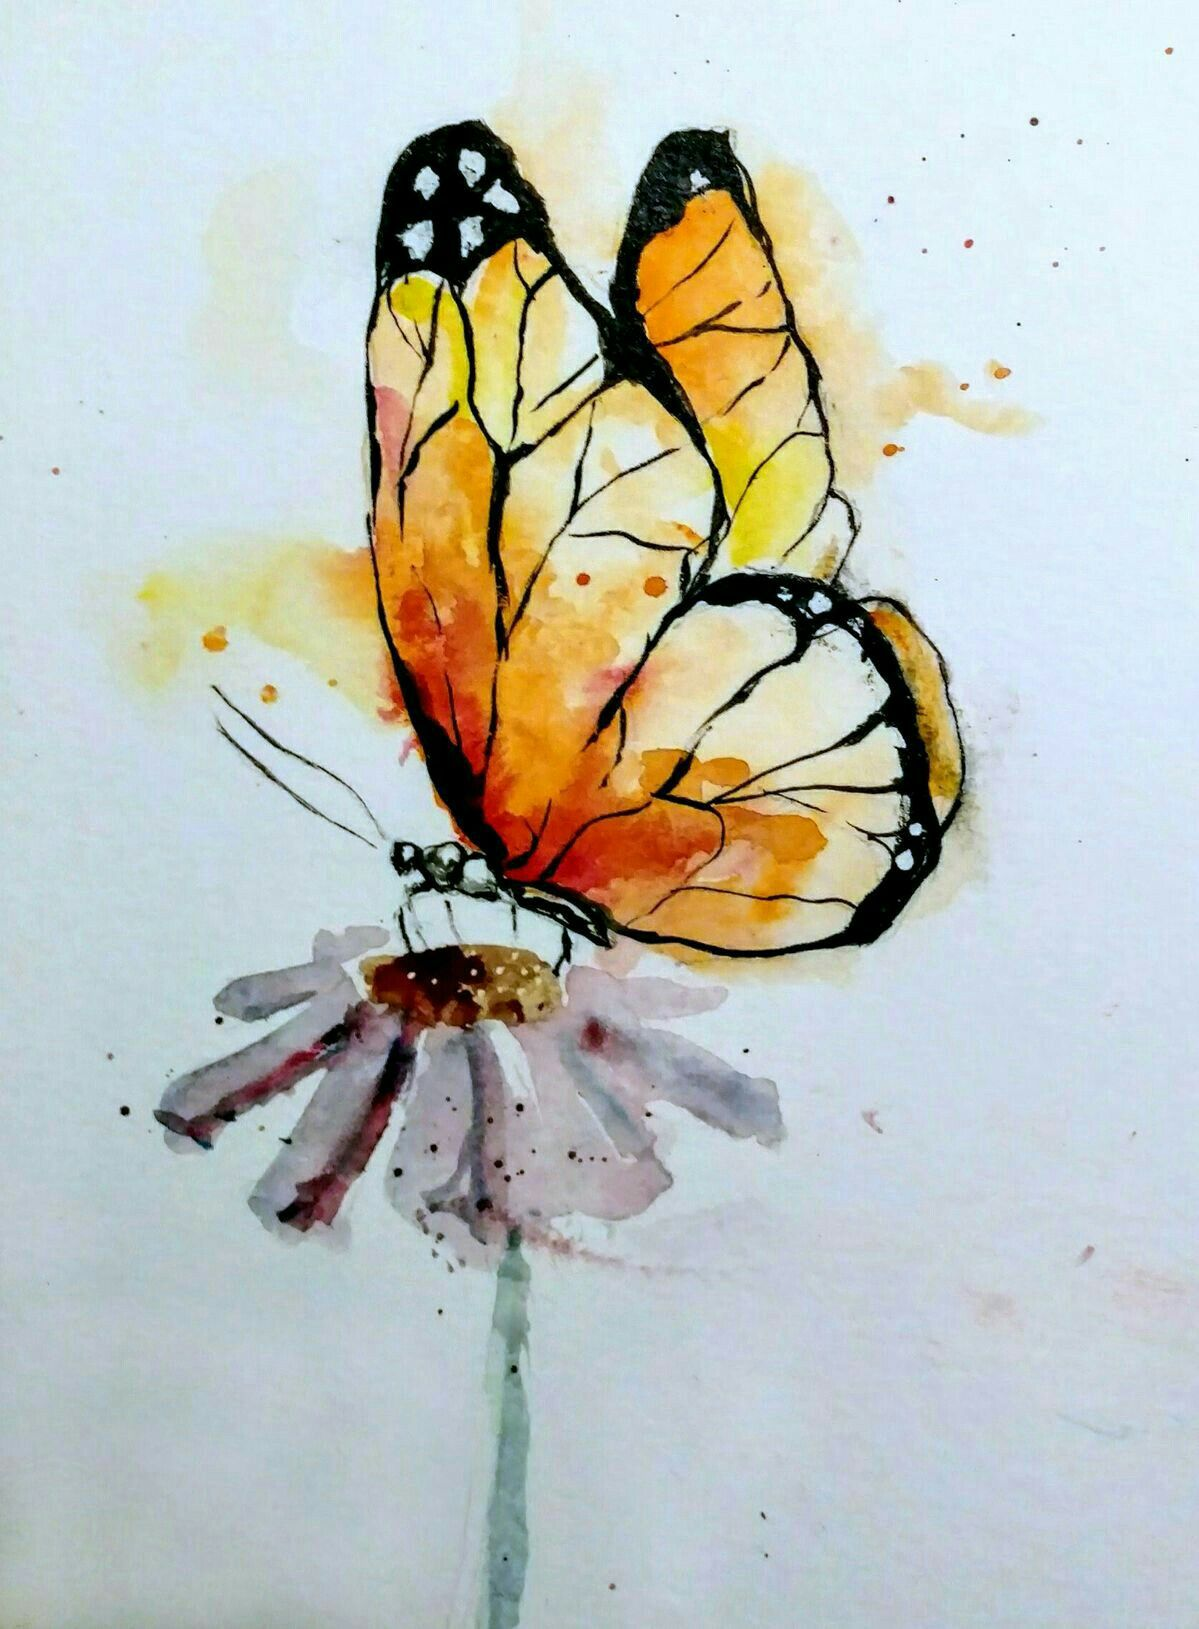 Pin By Abigail King On Pretty Things Butterfly Watercolor